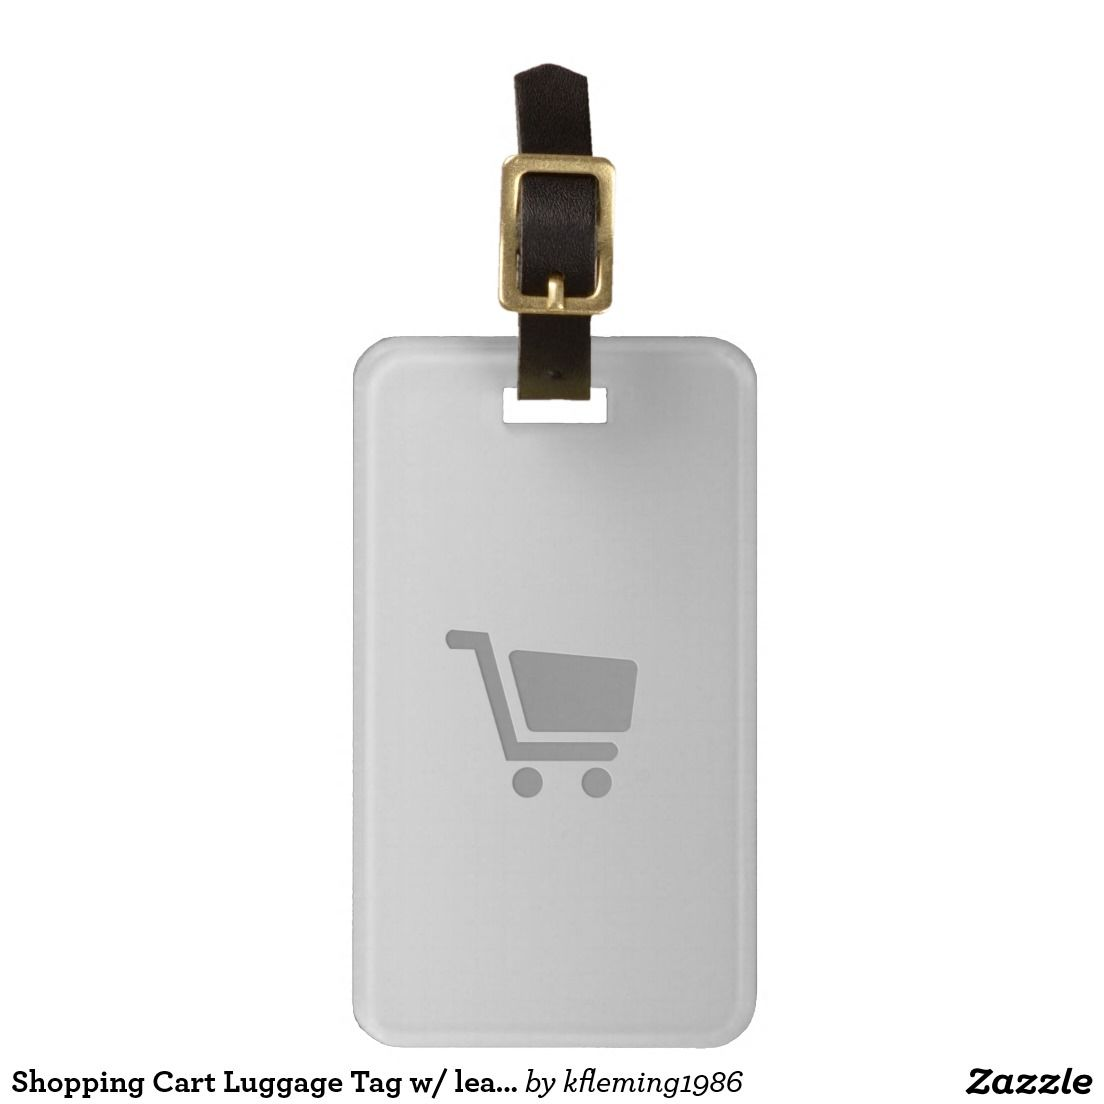 Shopping Cart Luggage Tag w/ leather strap